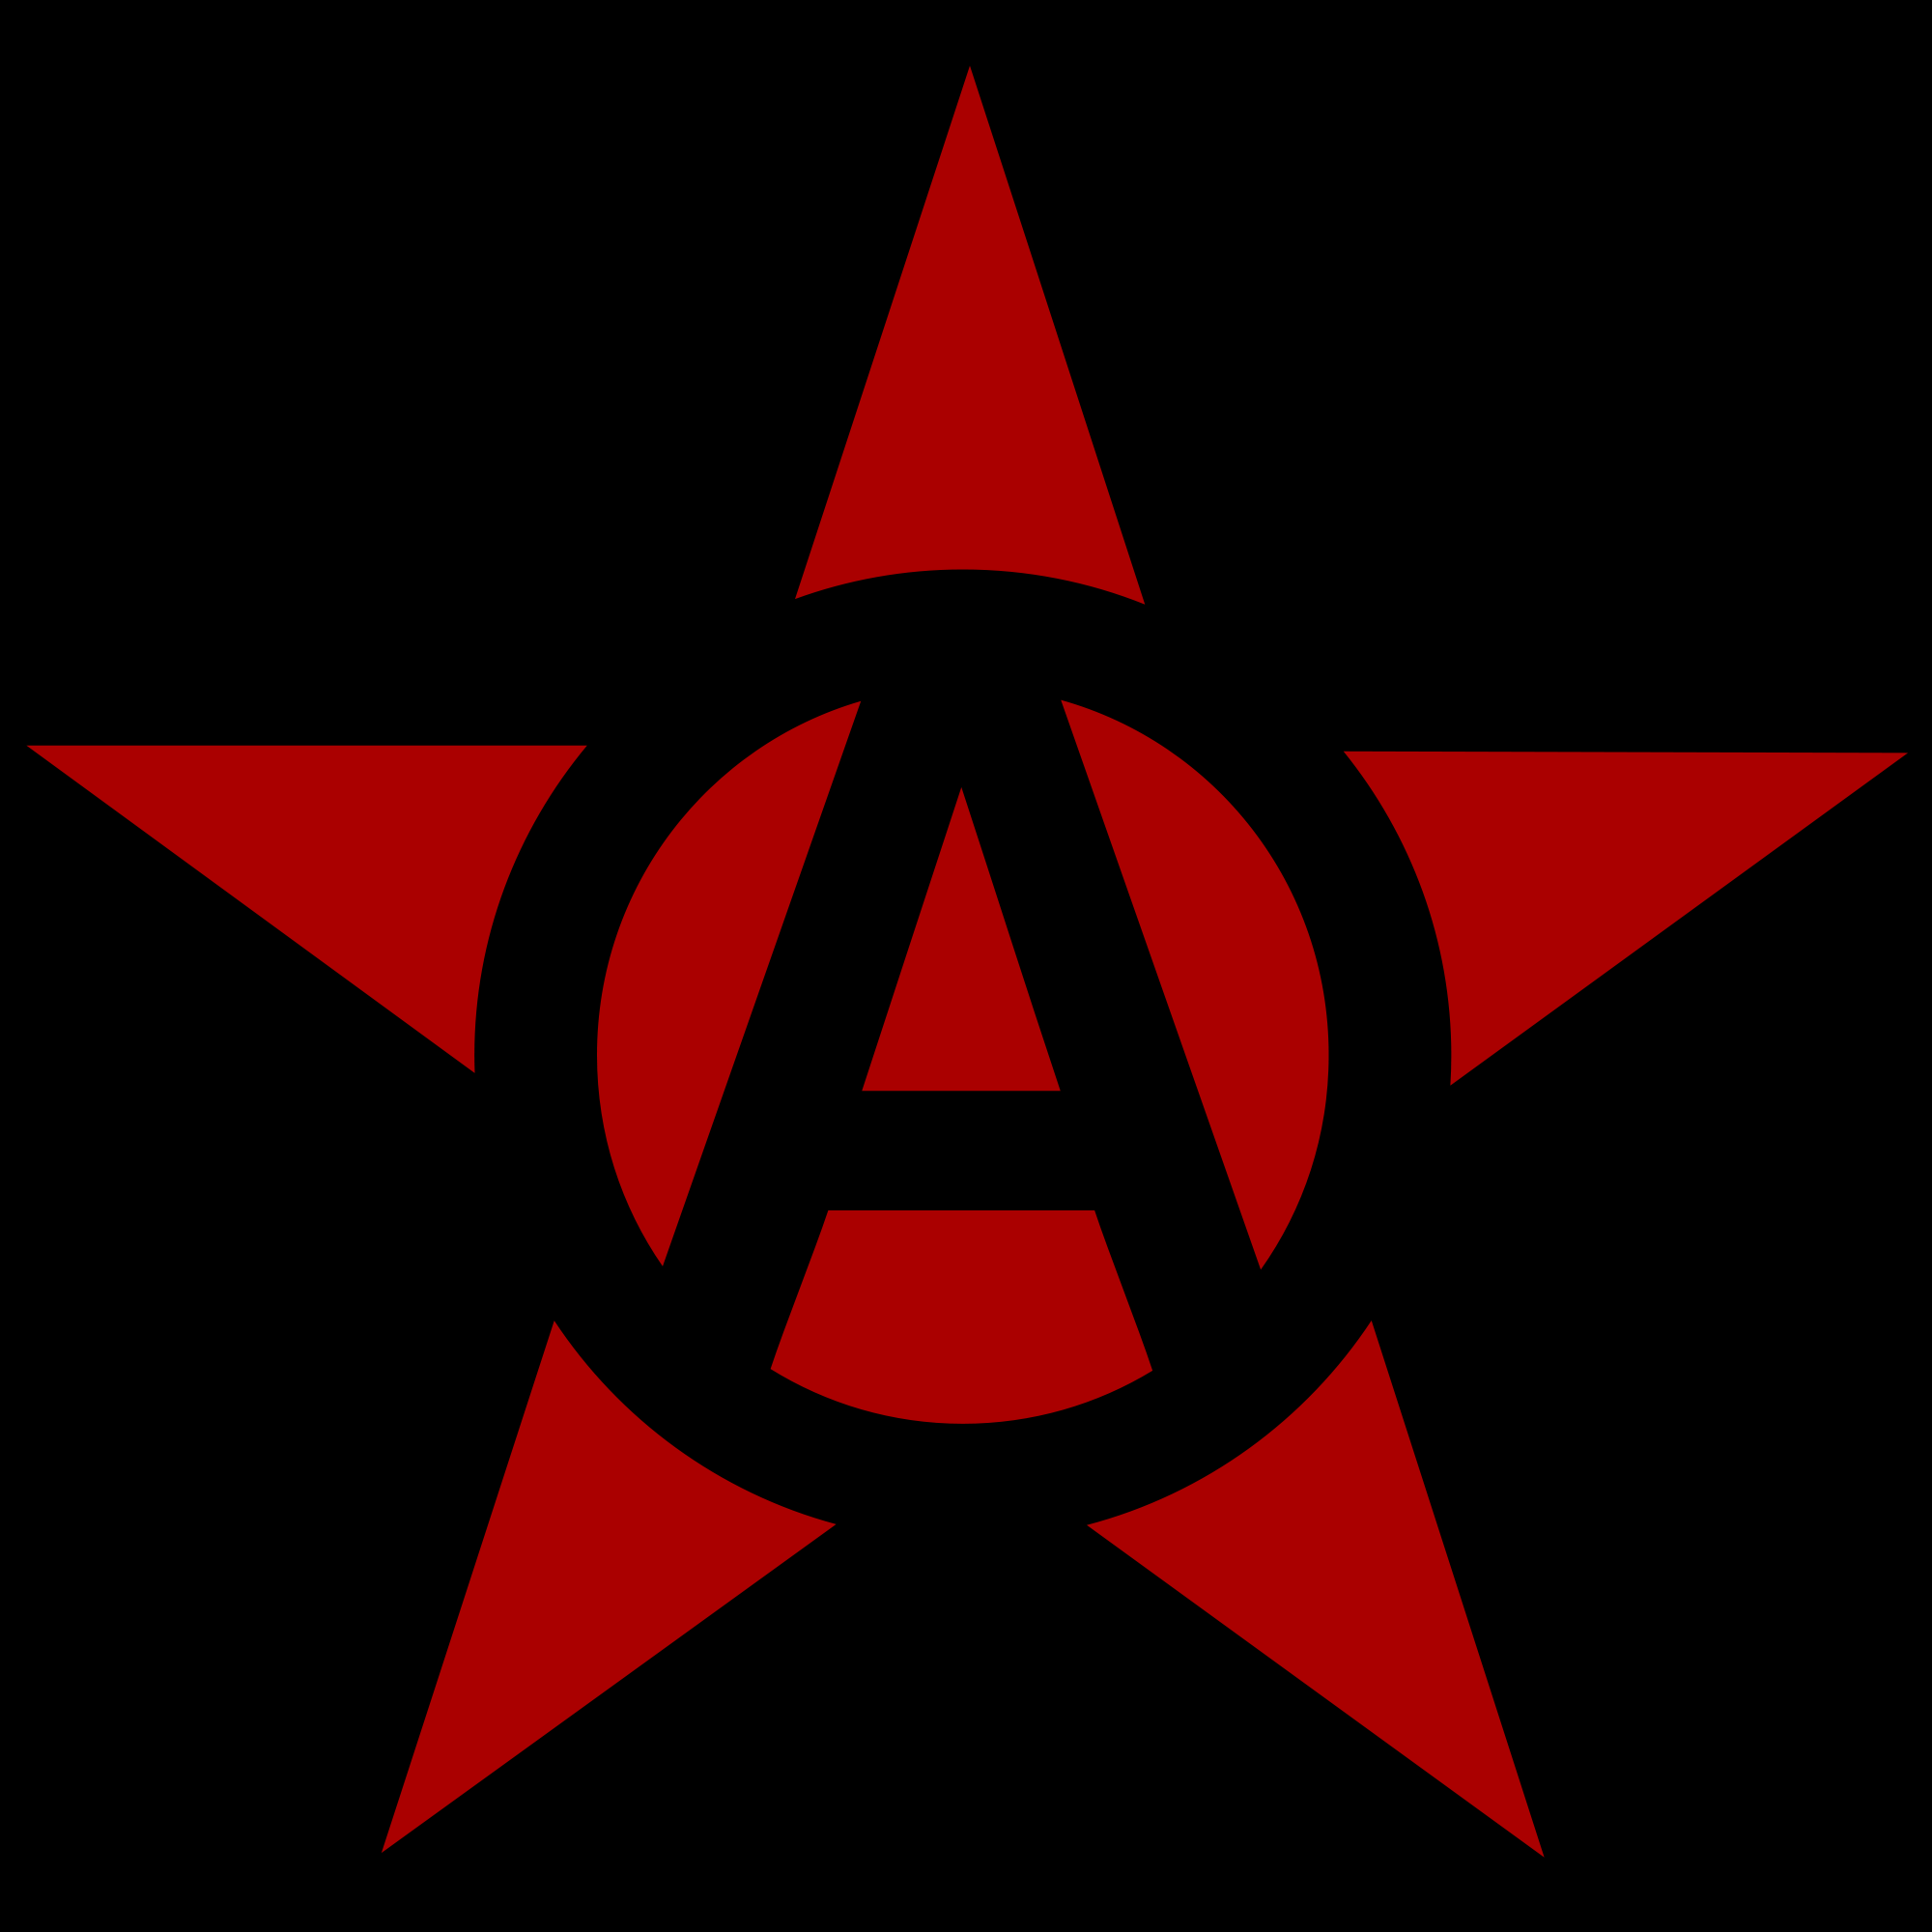 File:Circle-A red star.svg - Wikimedia Commons